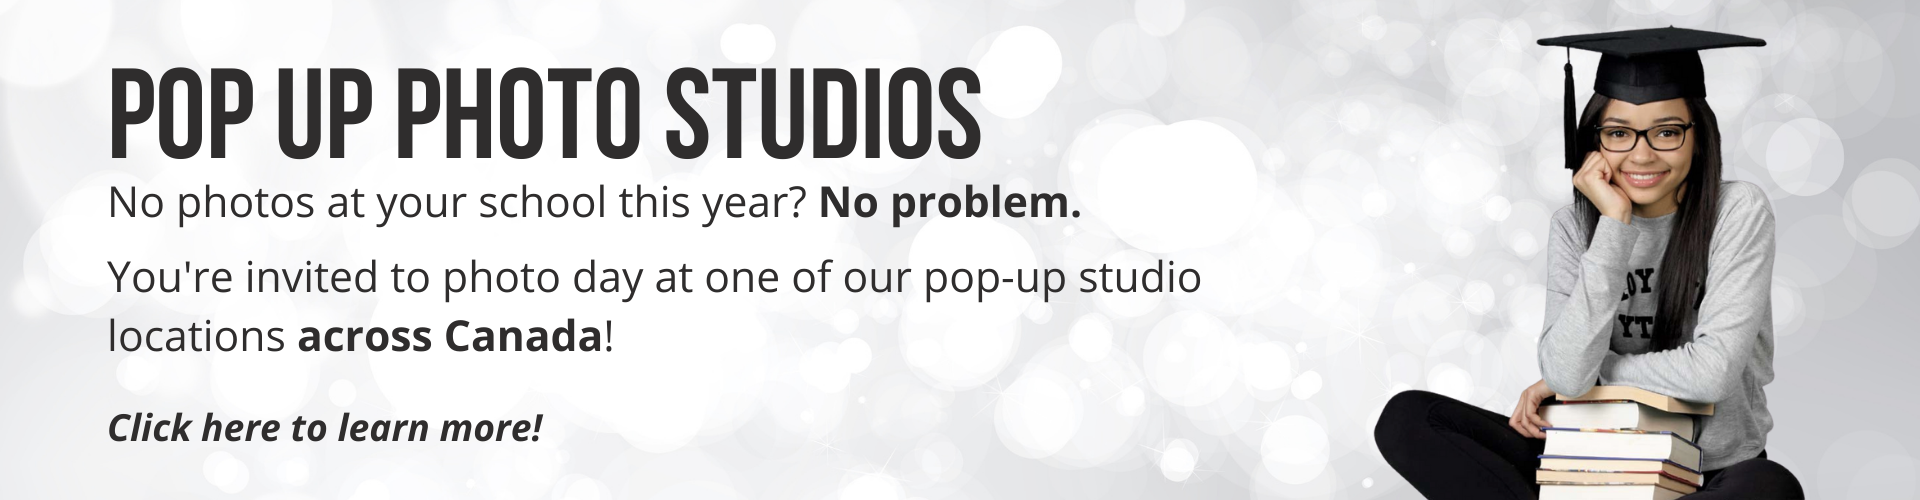 Hero Pop Up Photo Studios